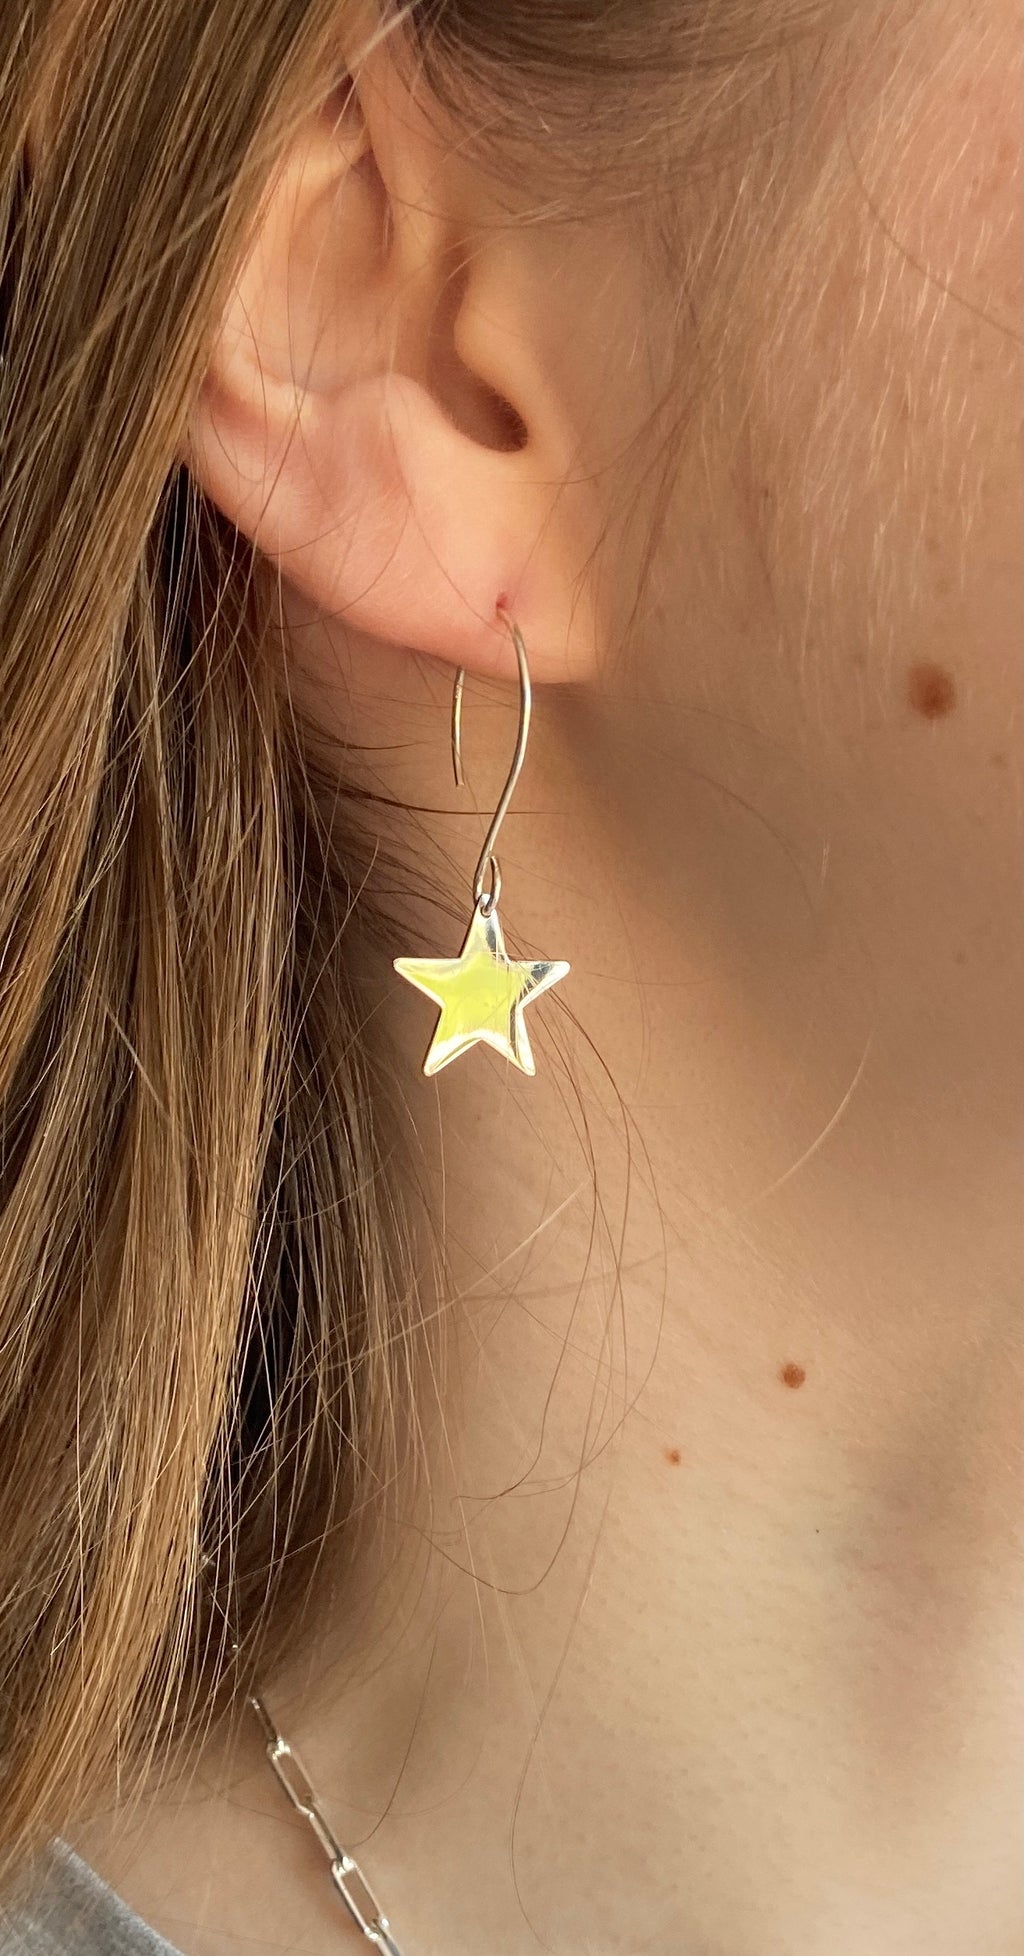 large star 🌟 earrings